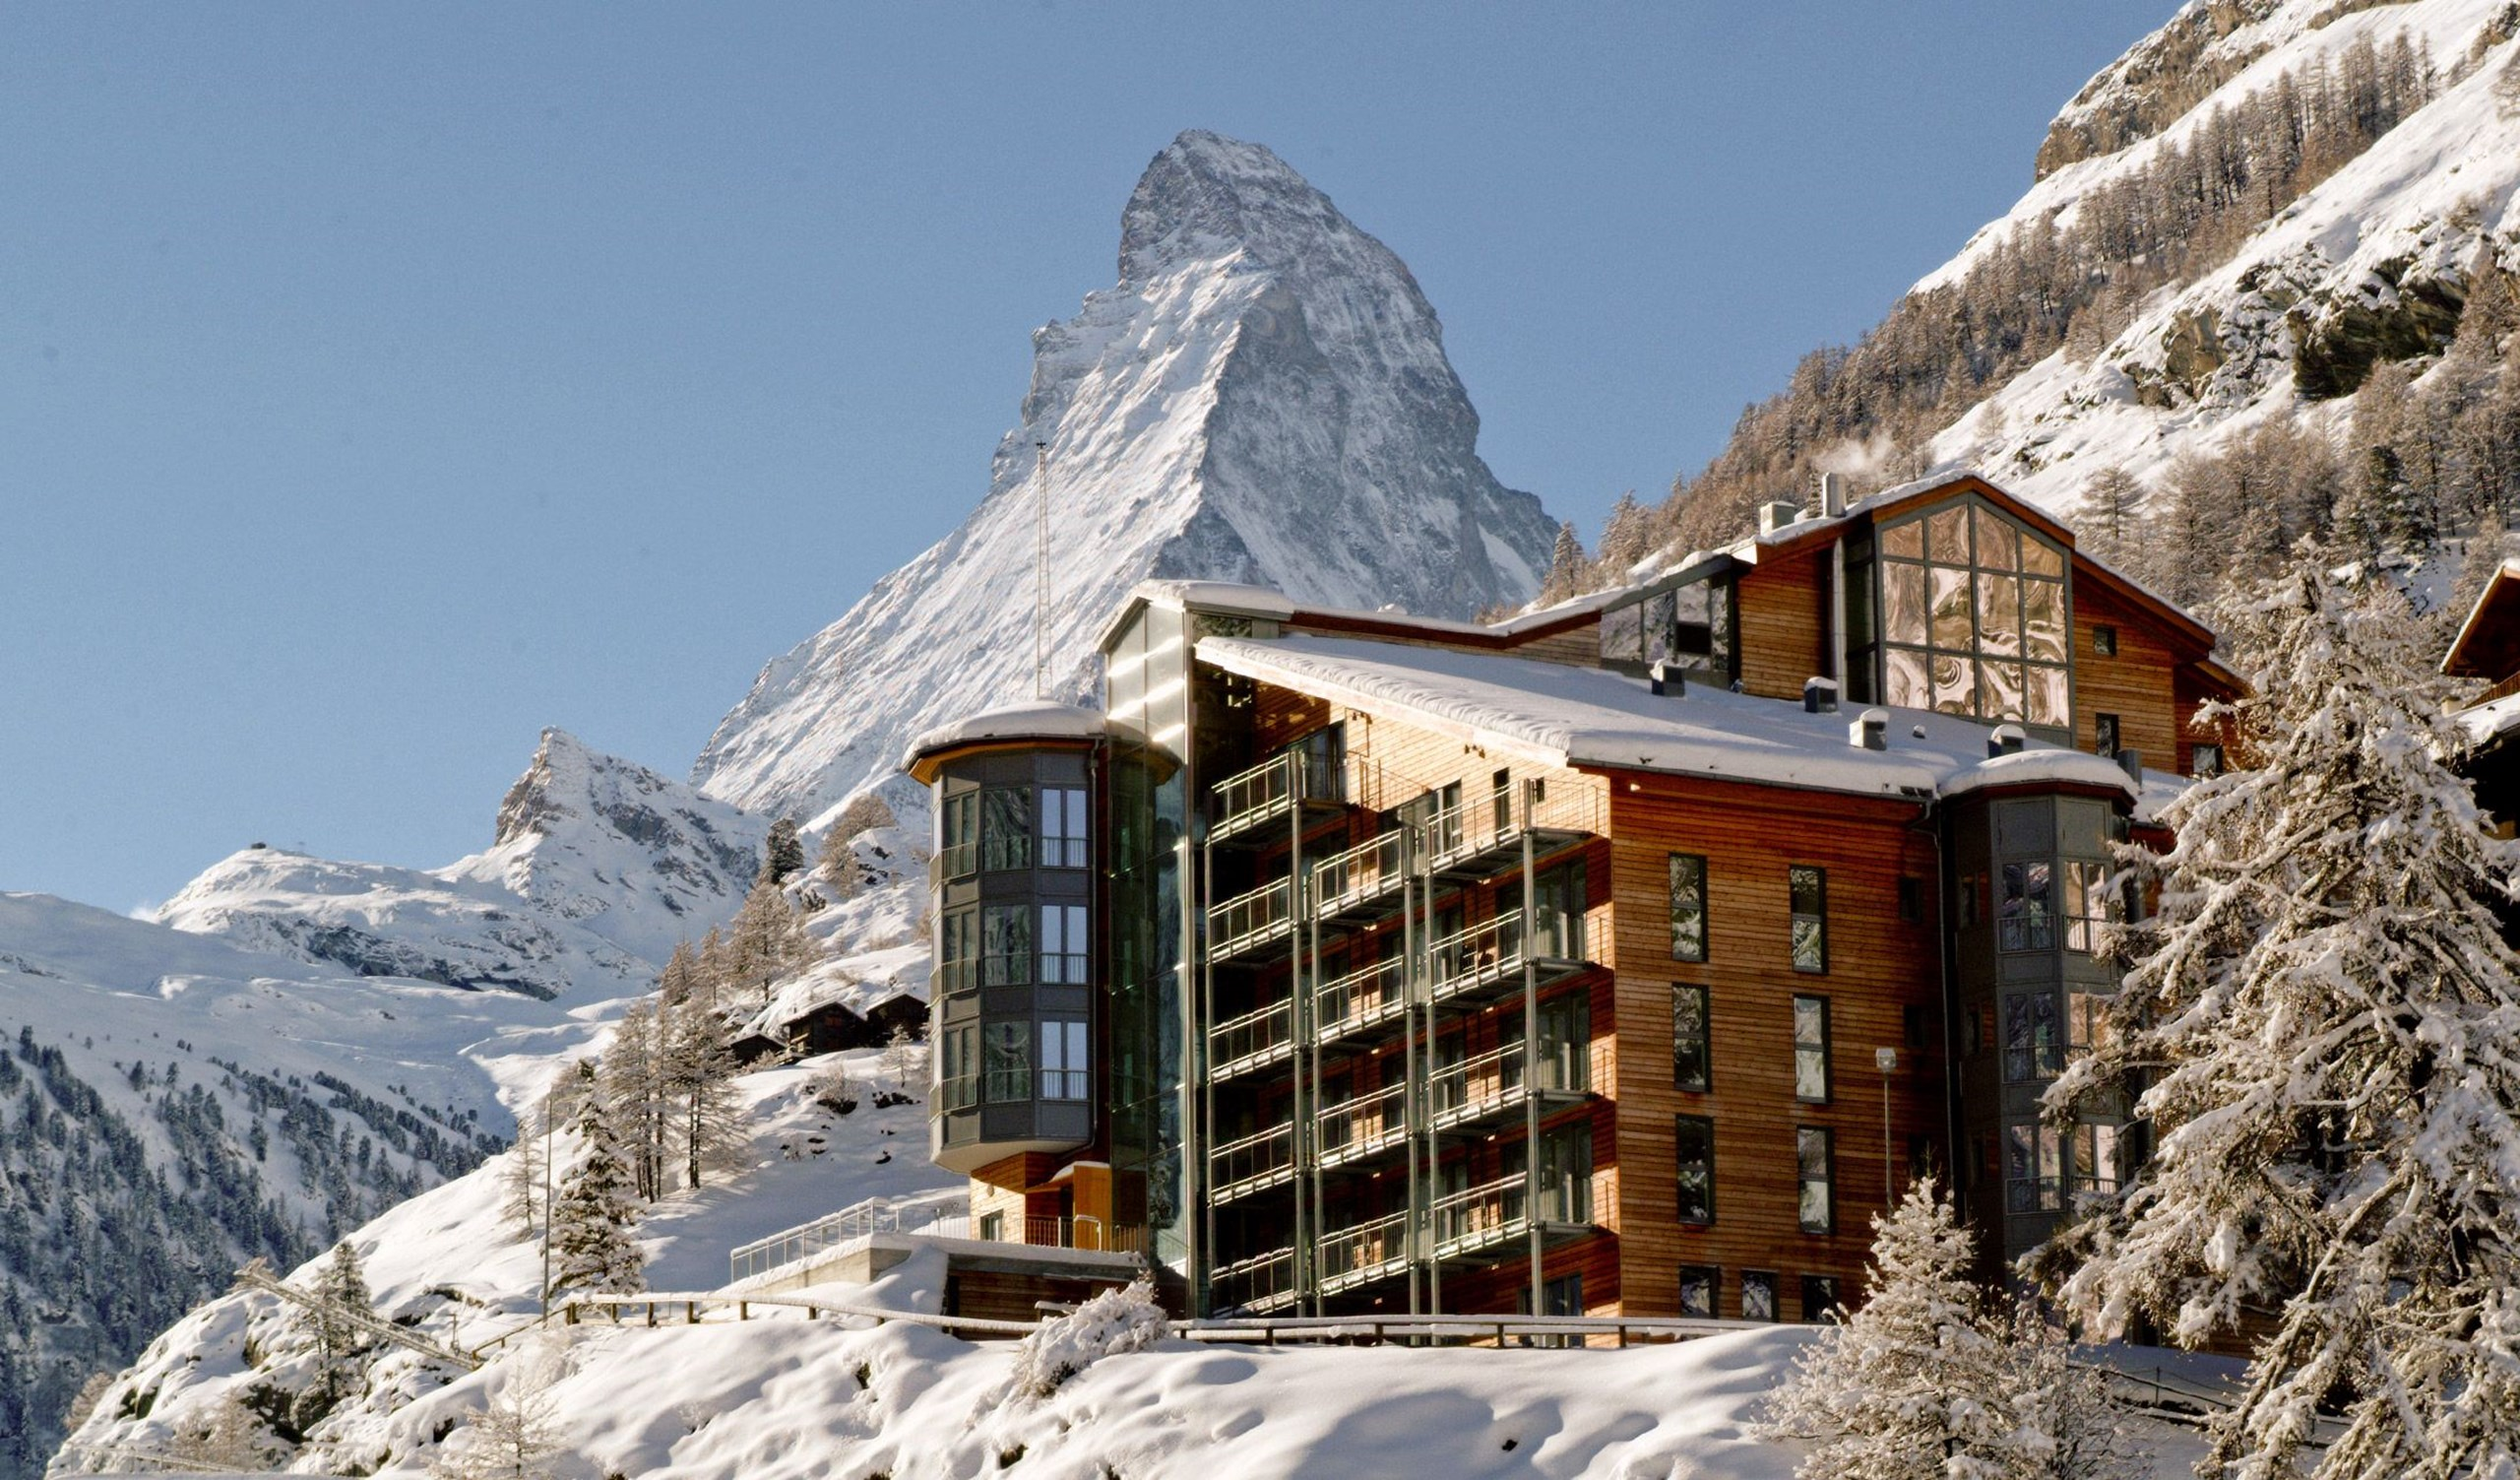 the-omnia-architecture-building-mountain-winter-view-M-07-r-newwwww.jpg